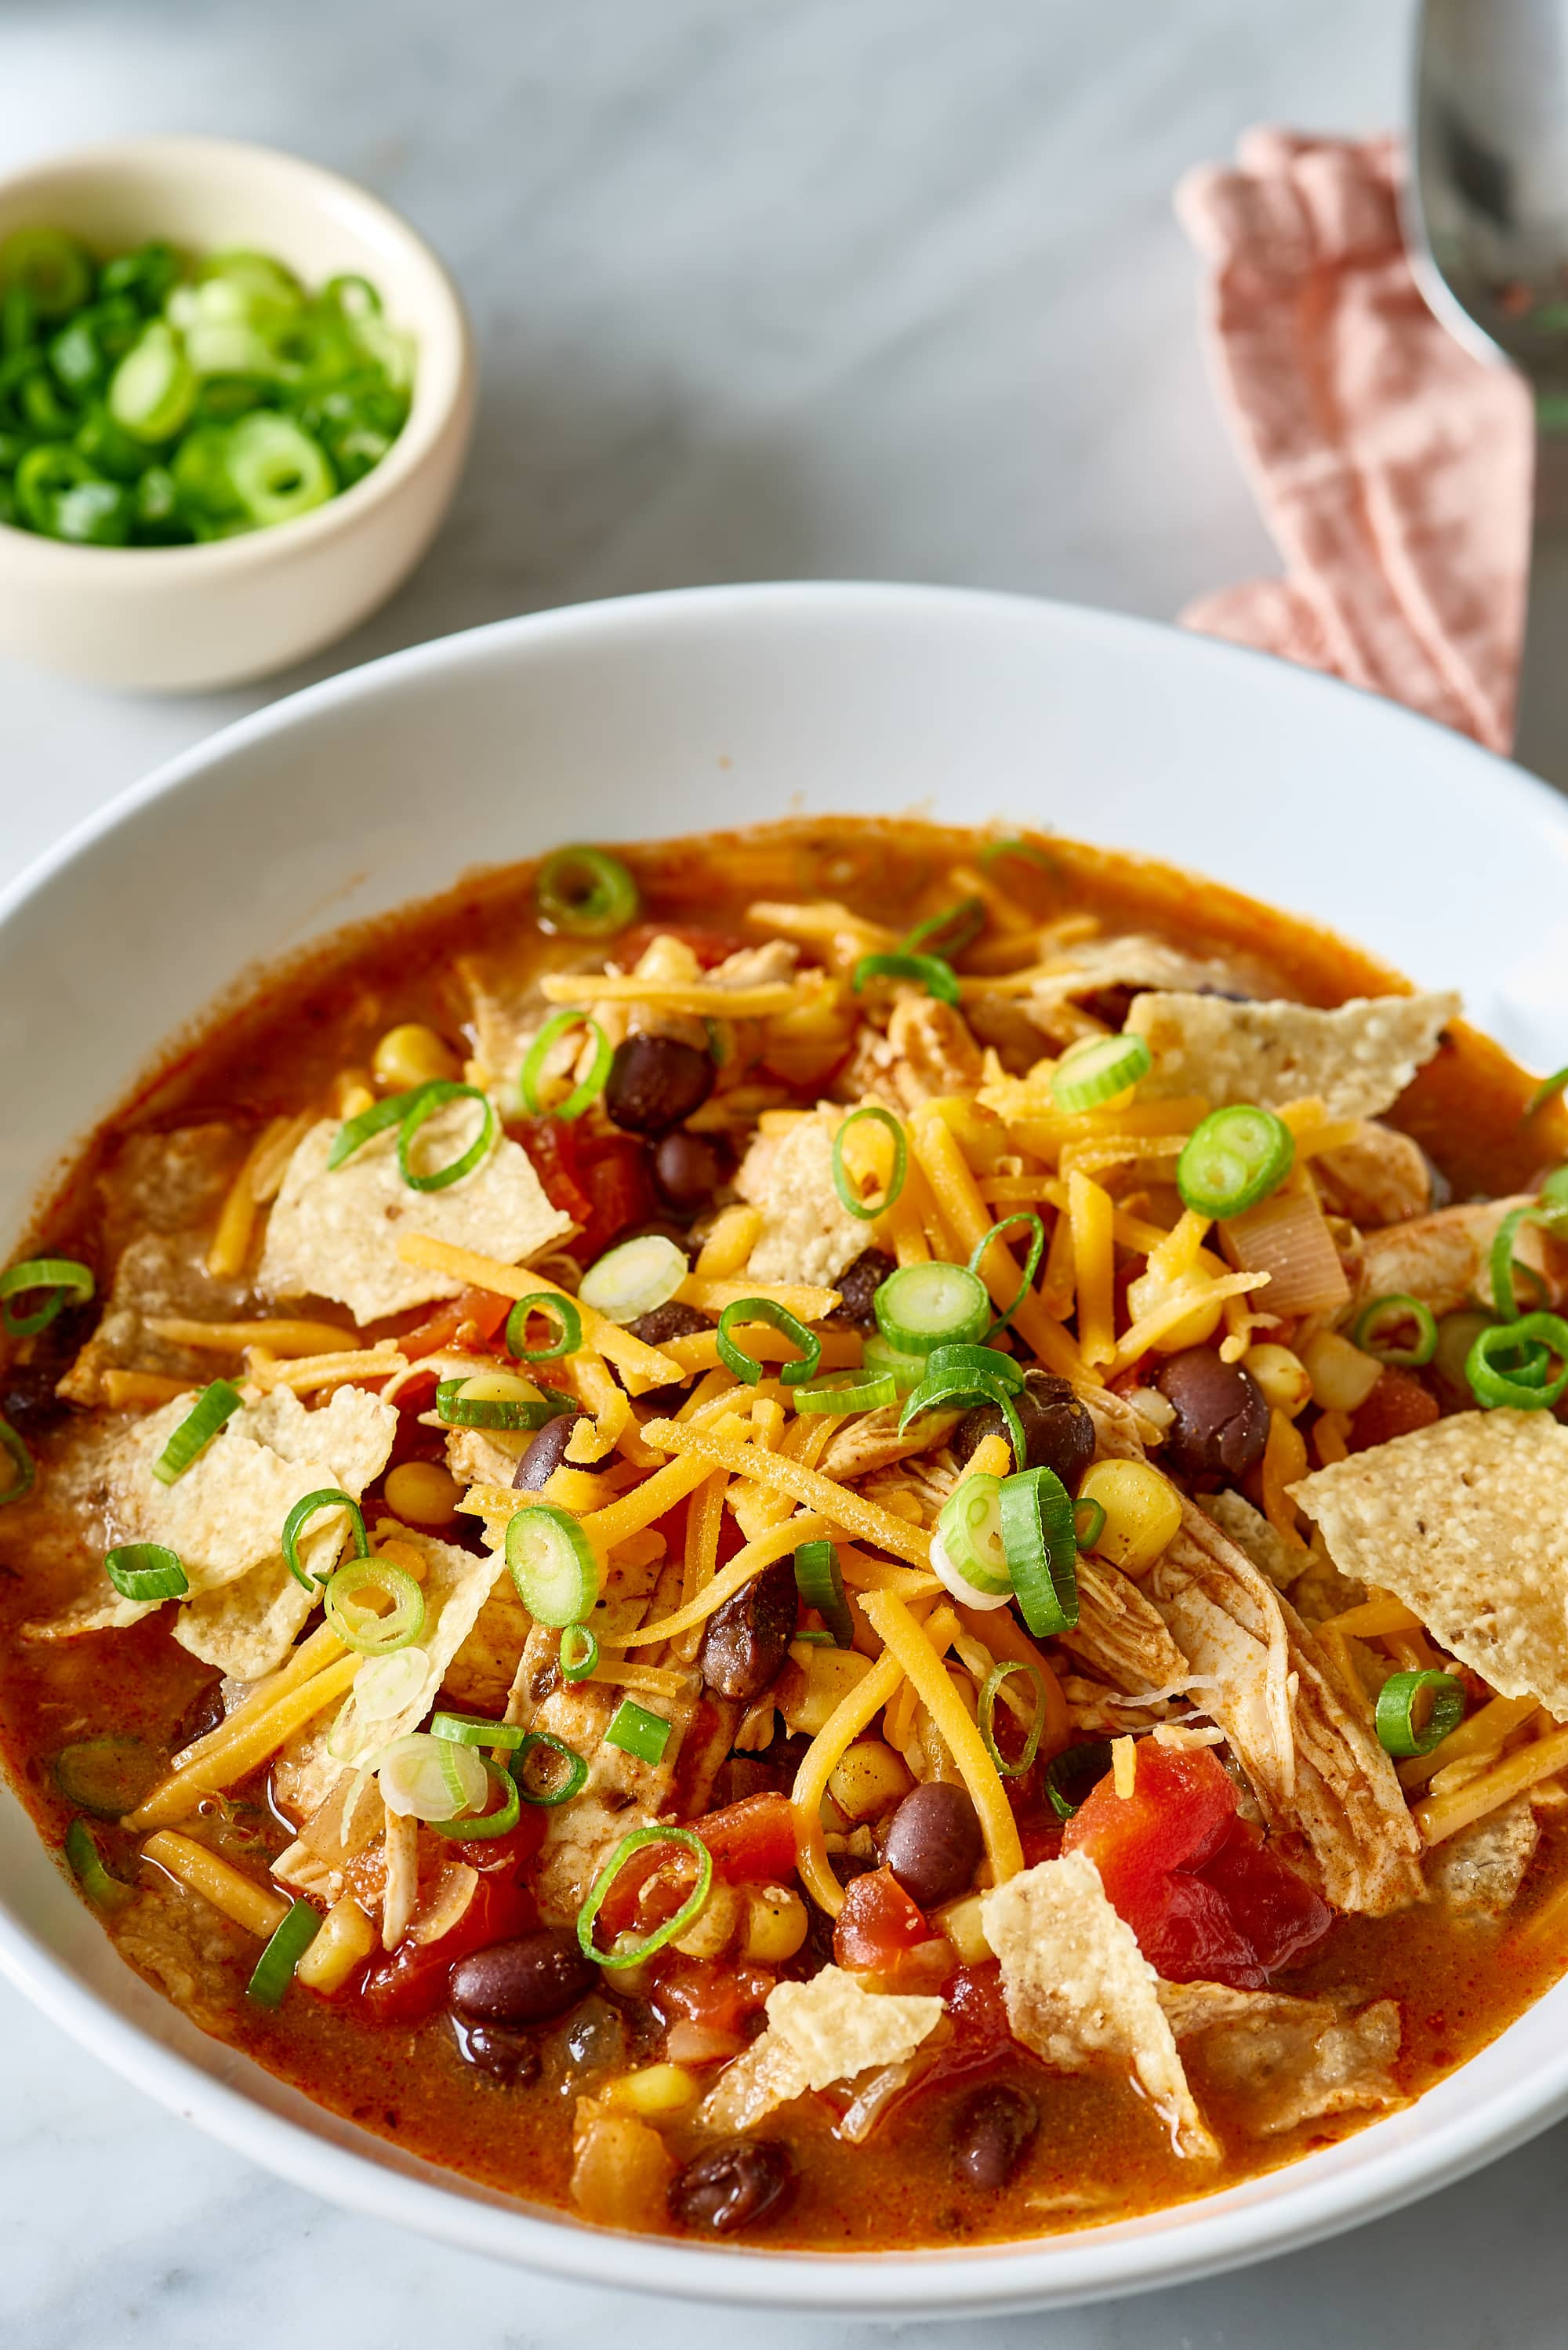 Recipe: Easy One-Pot Chicken Taco Soup